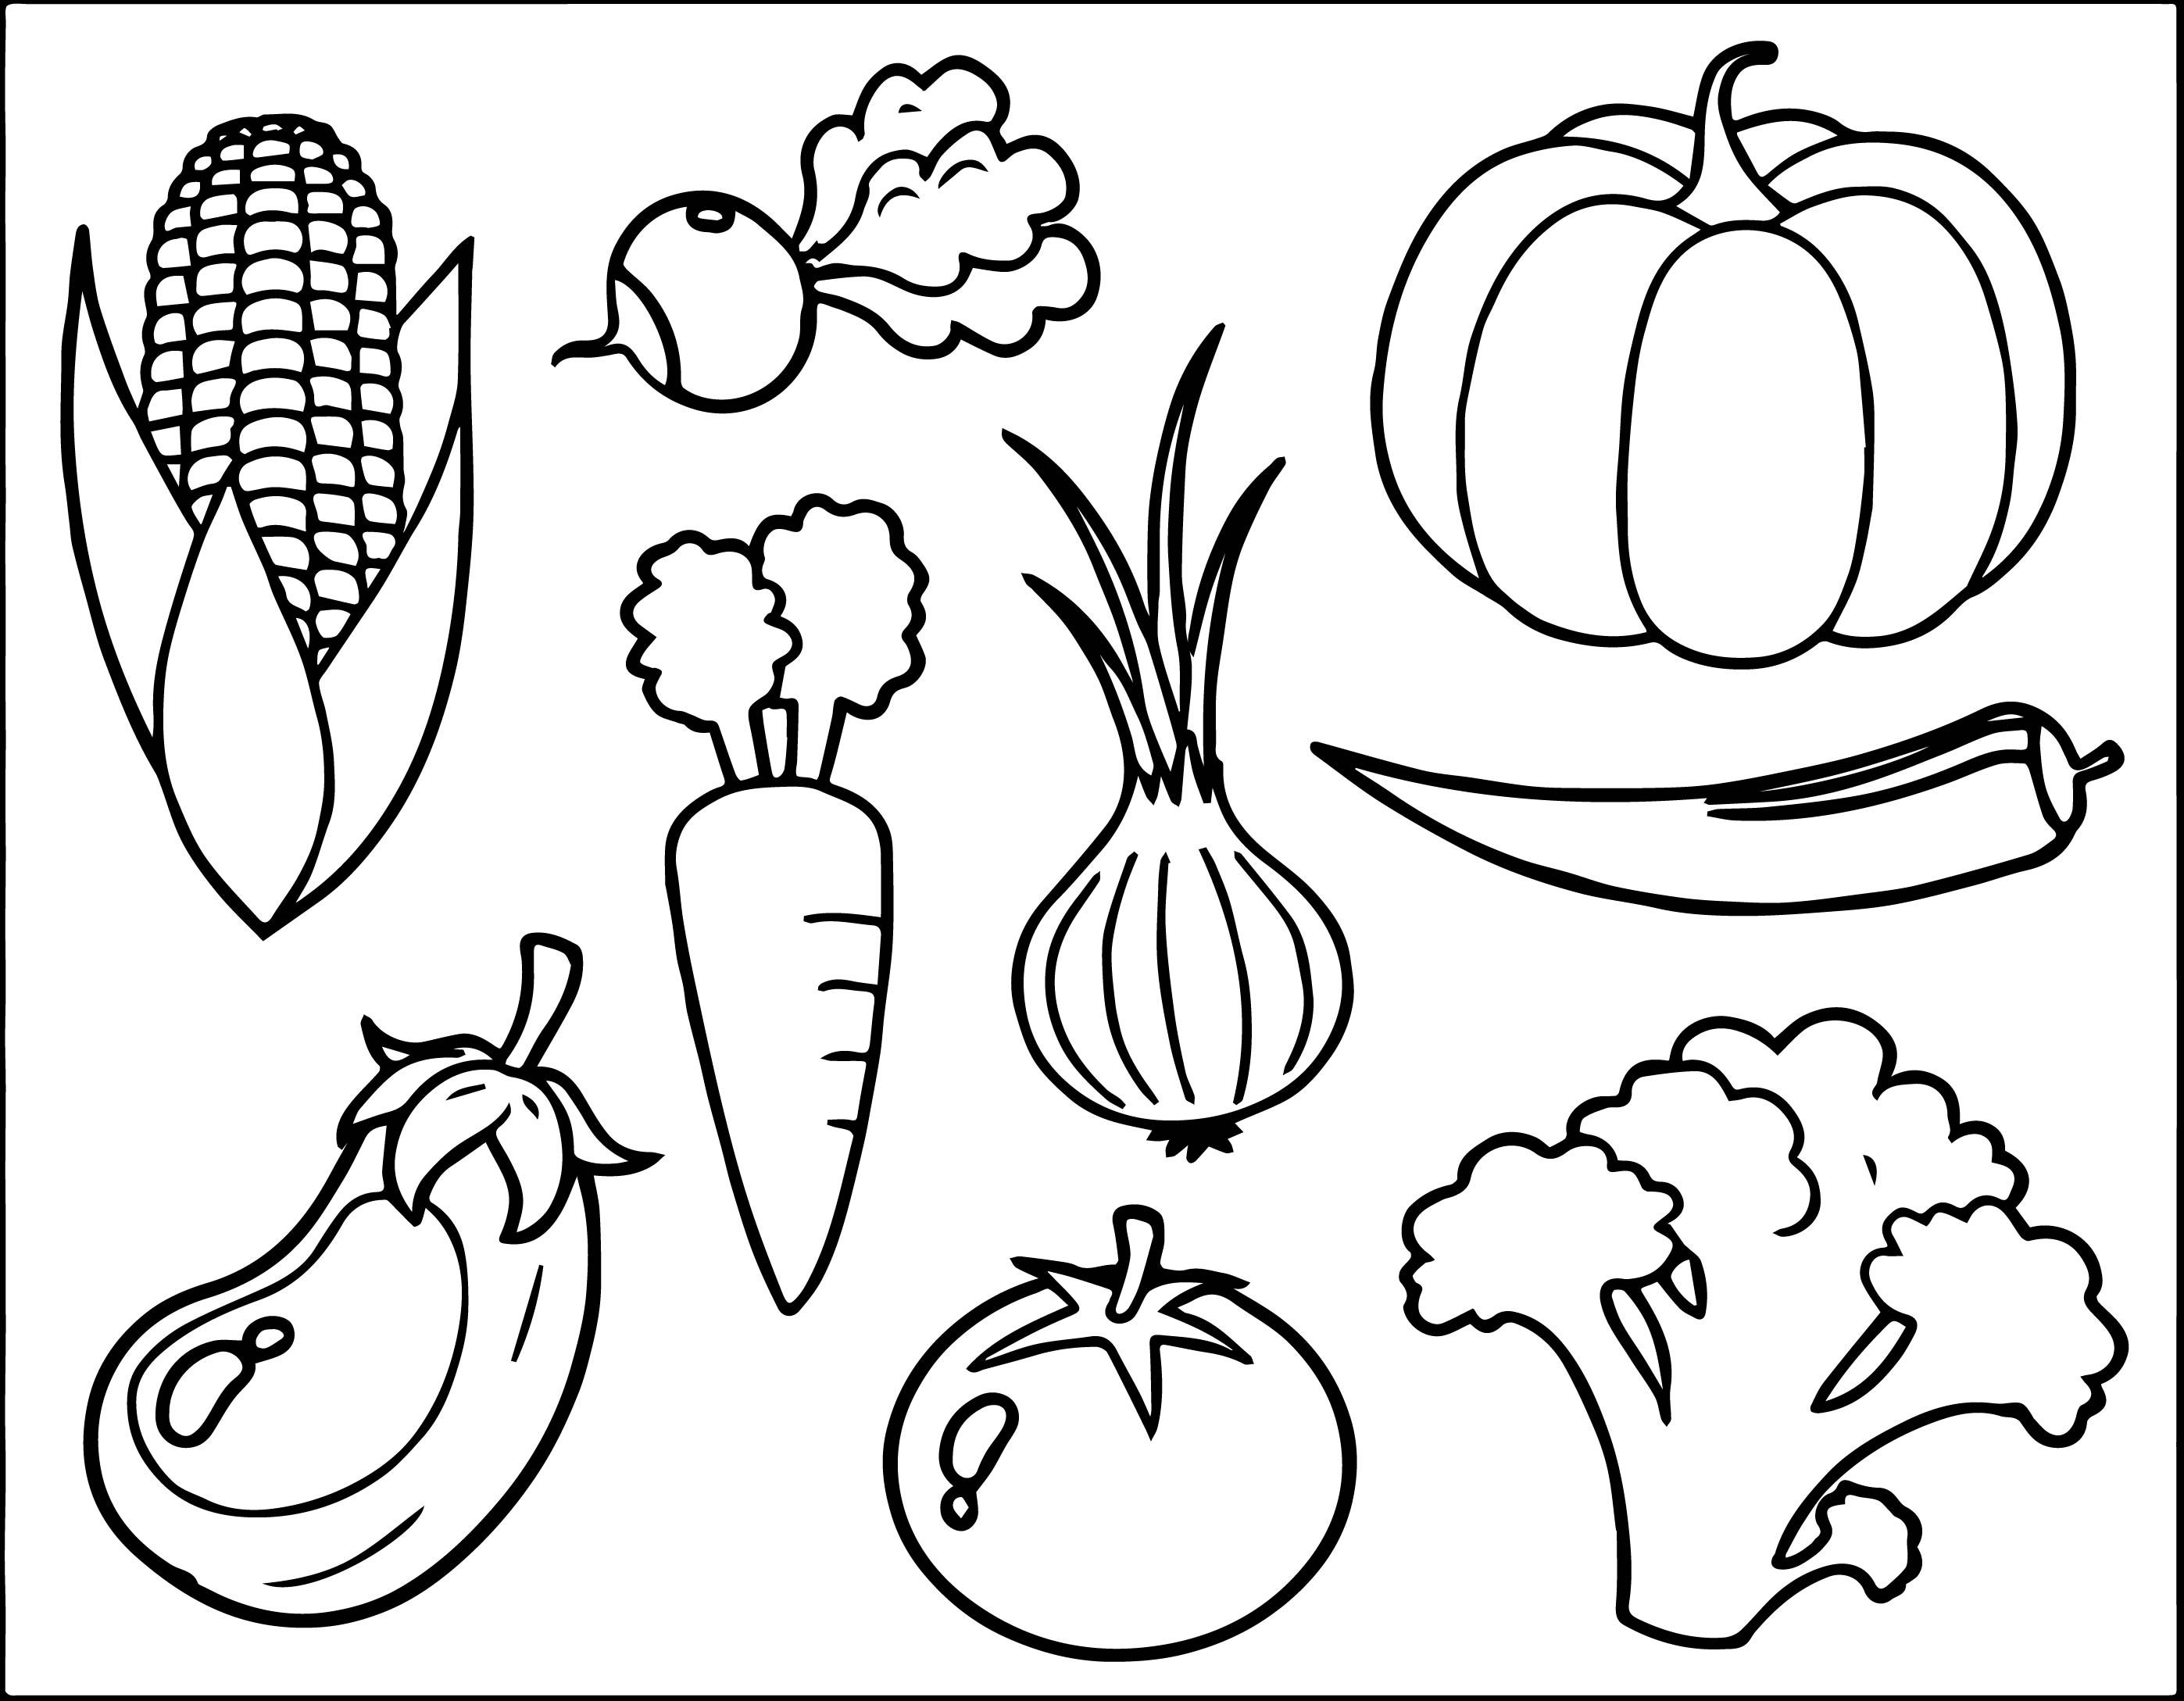 Free Vegetable Coloring Page Food Coloring Pages Fruit Coloring